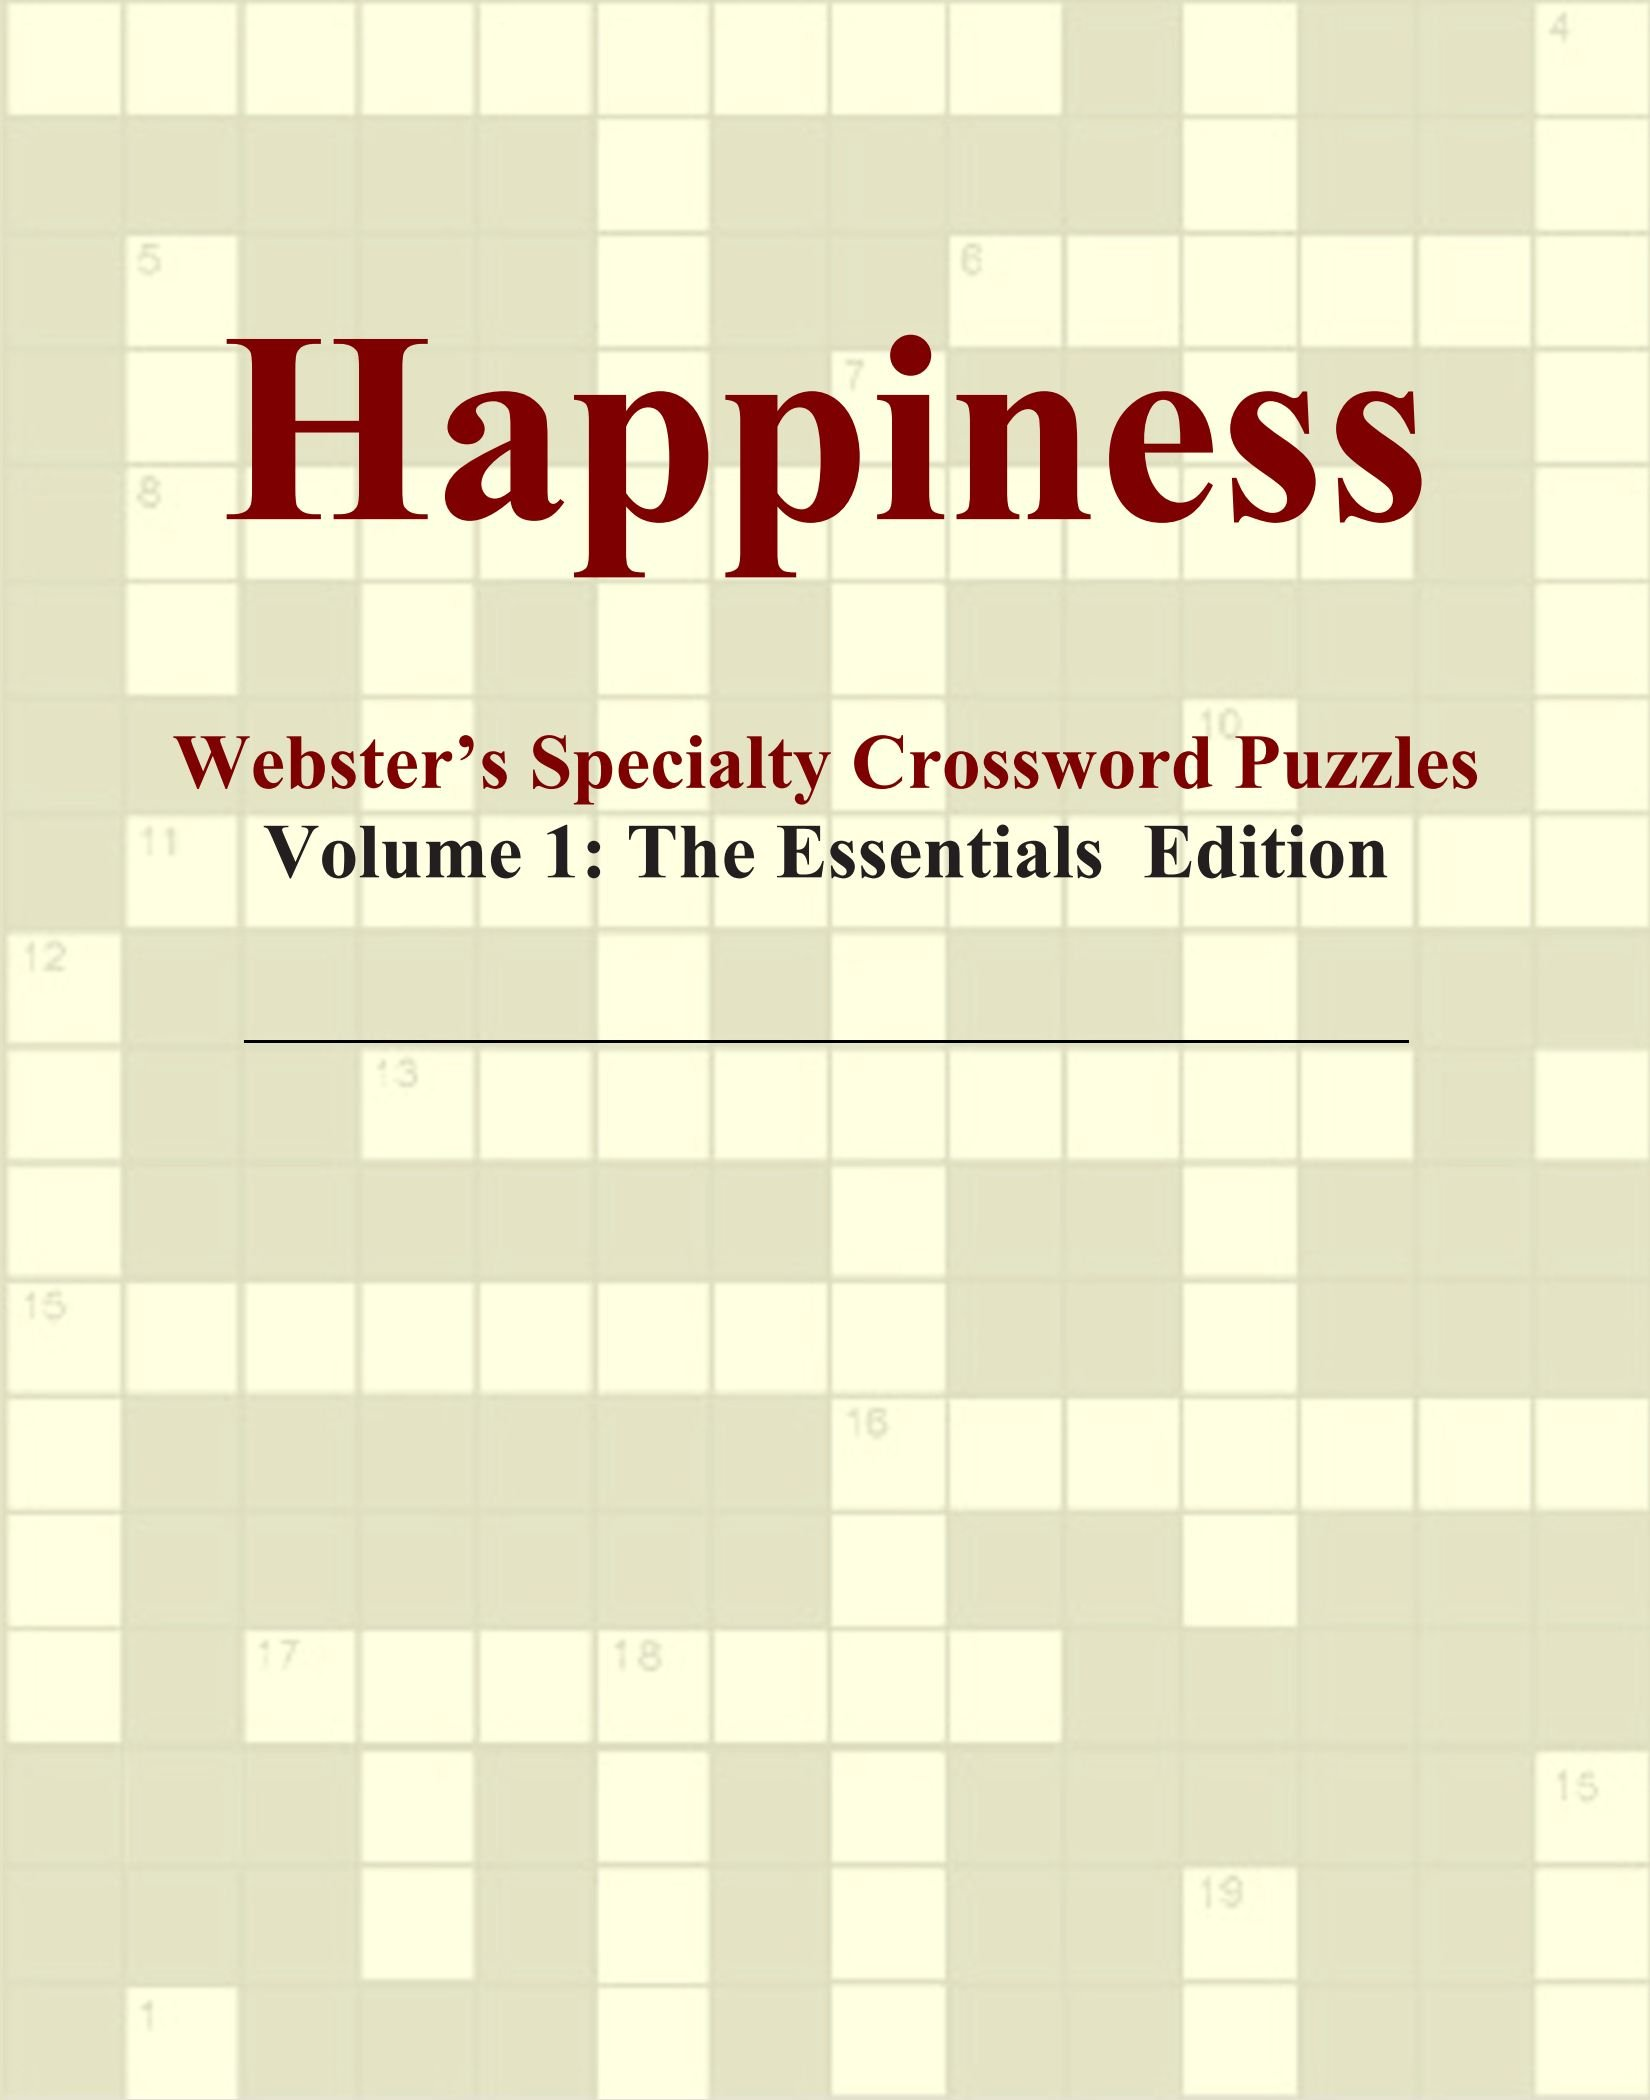 Read Online Happiness - Webster's Specialty Crossword Puzzles, Volume 1: The Essentials Edition PDF